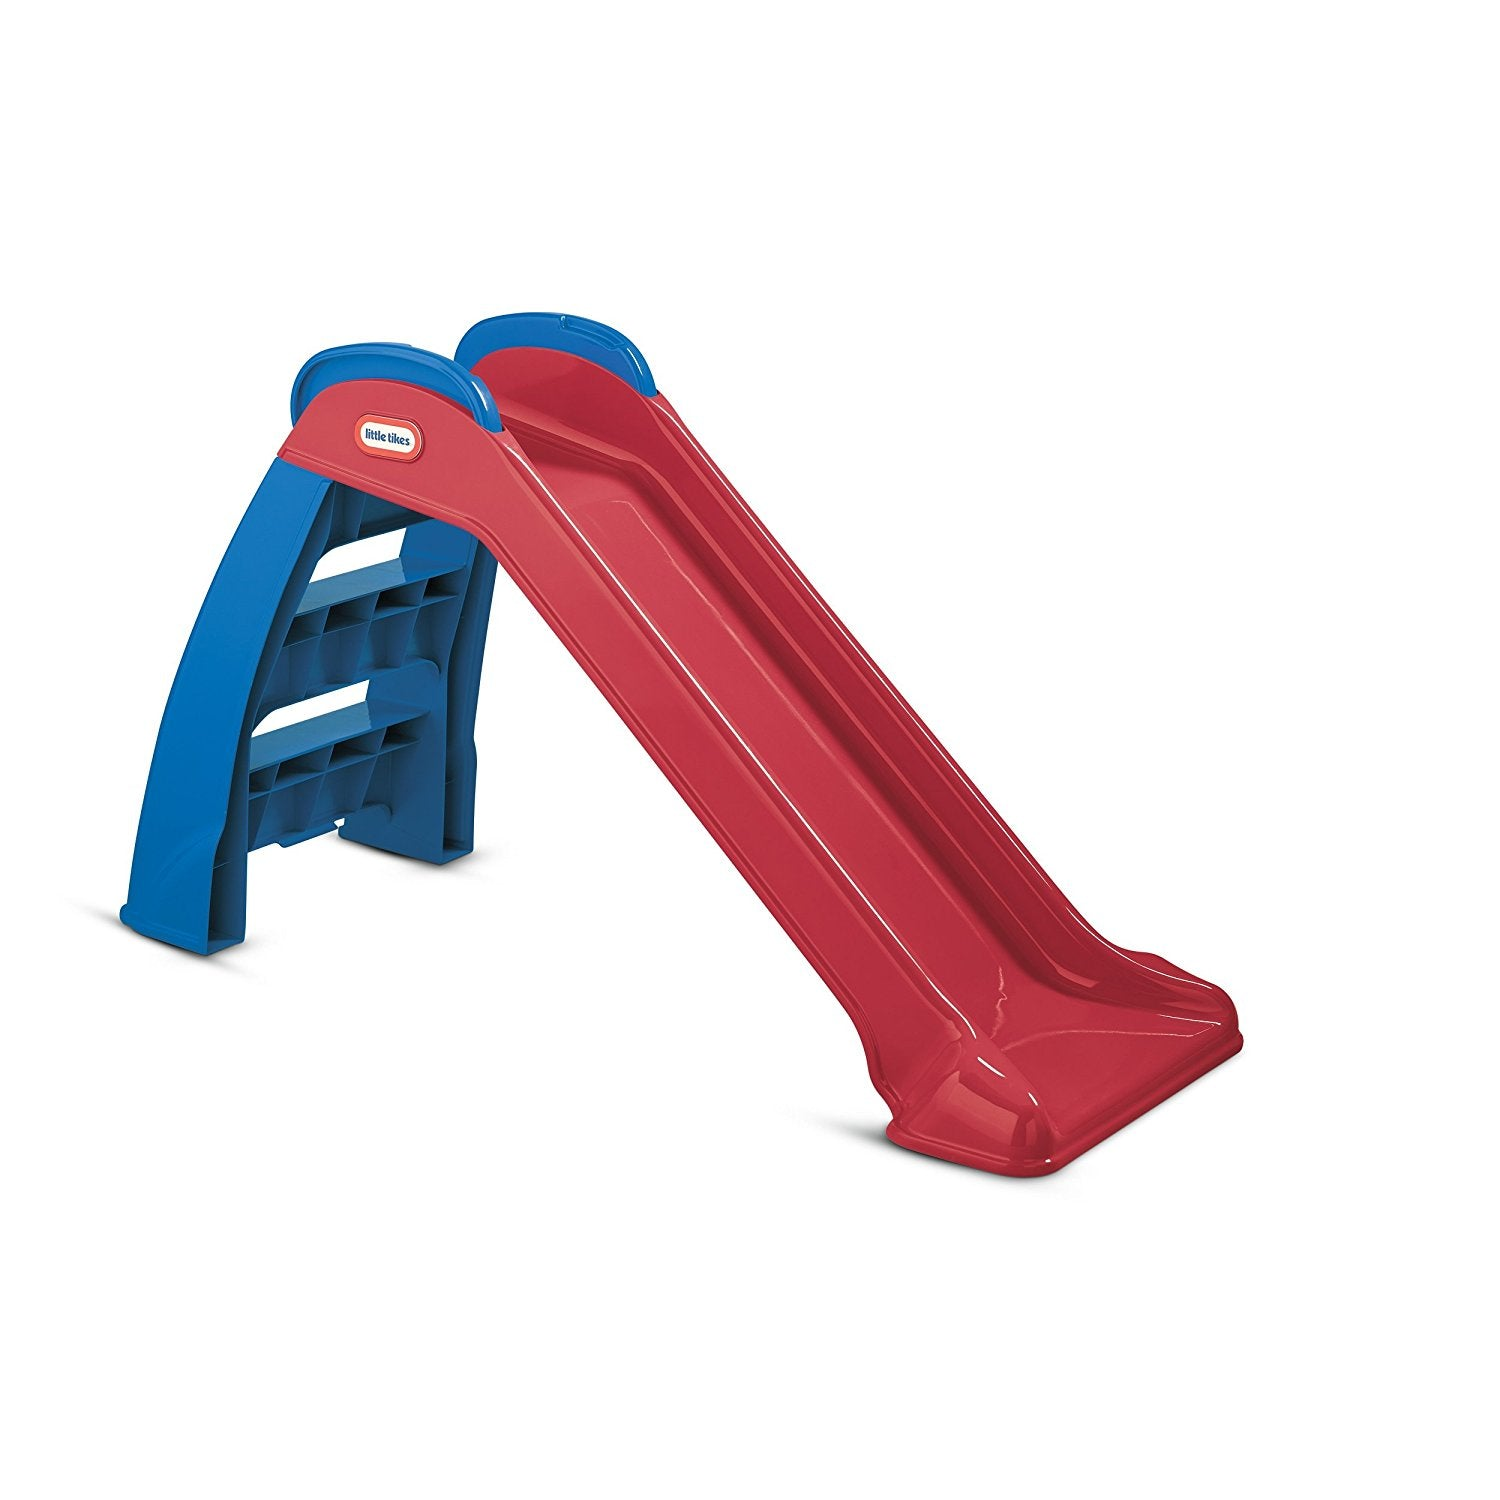 Little Tikes Red/Blue Slide